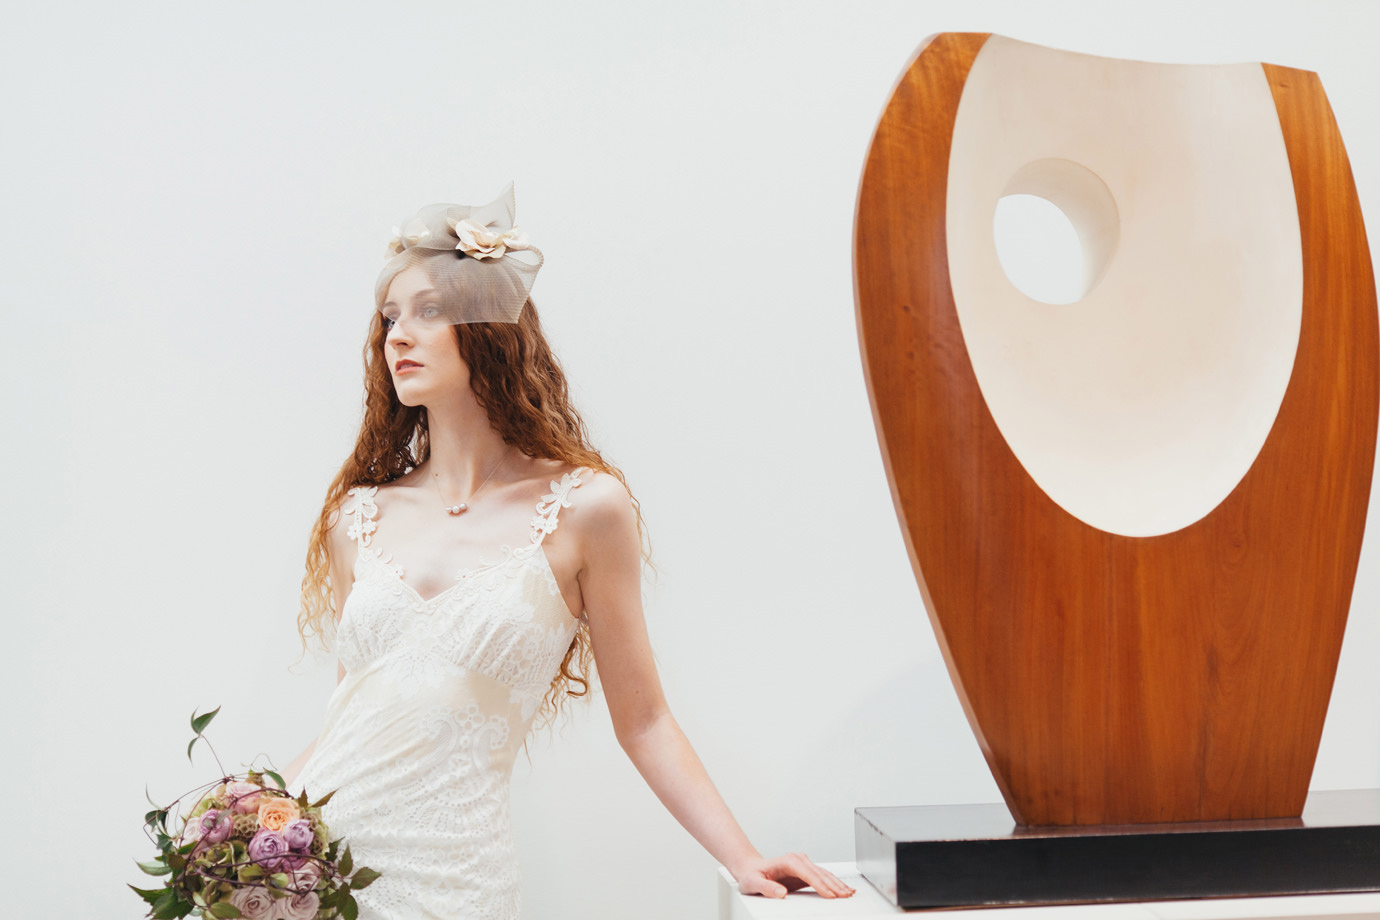 Model against Hepworth artwork, autumnal bridal flowers